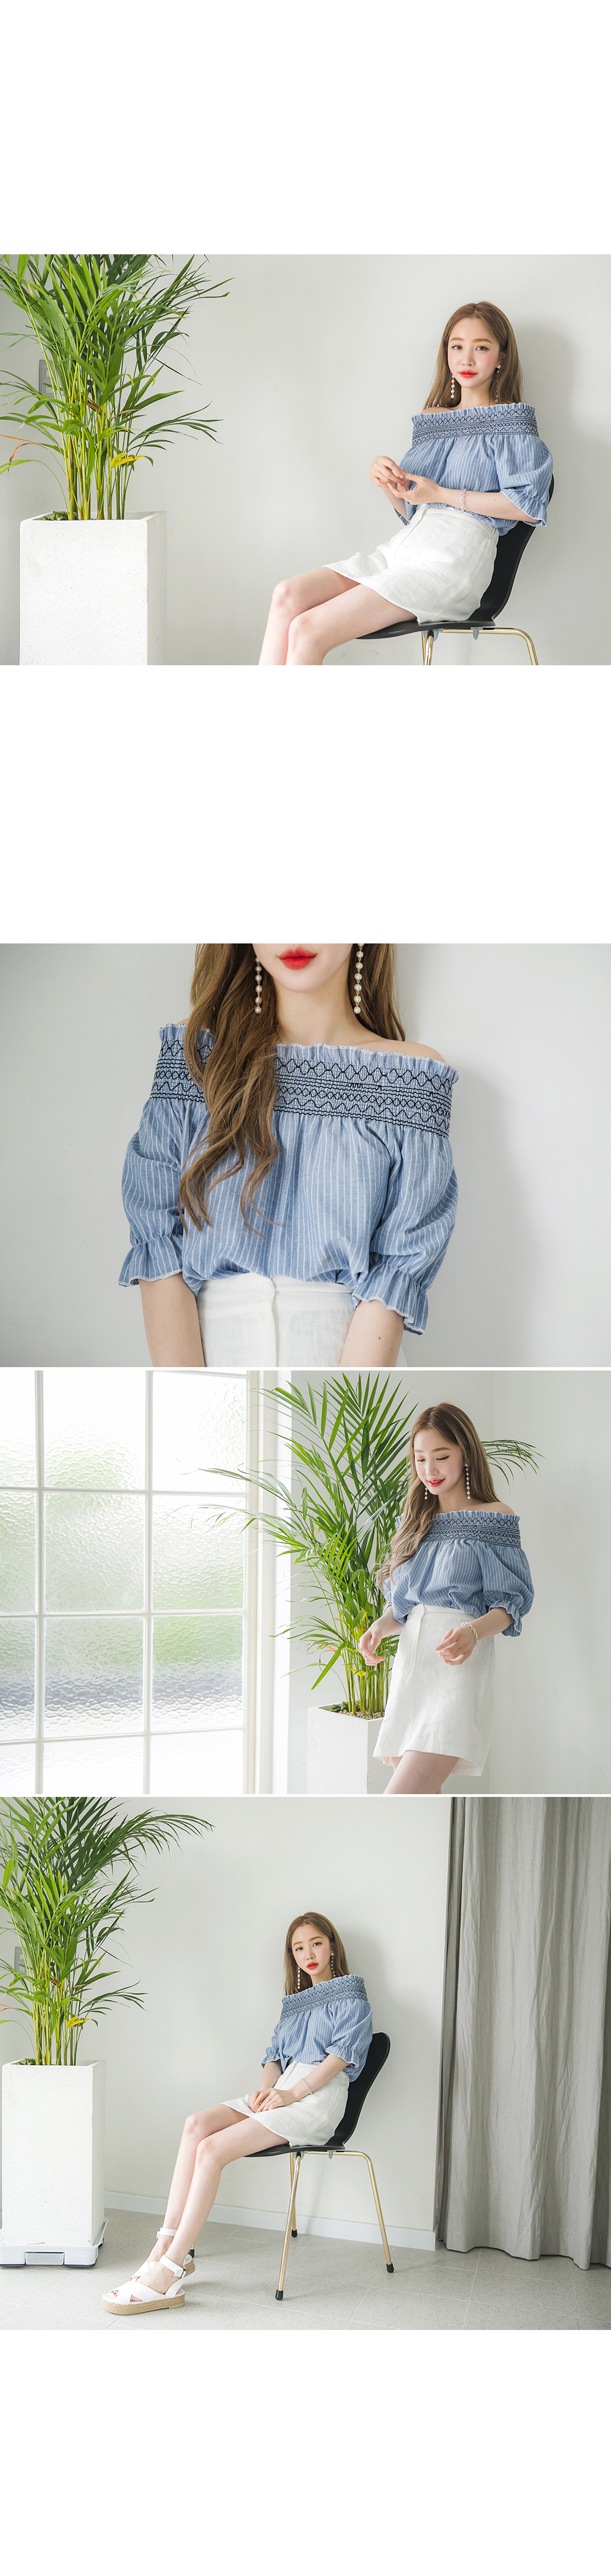 Taming off blouse